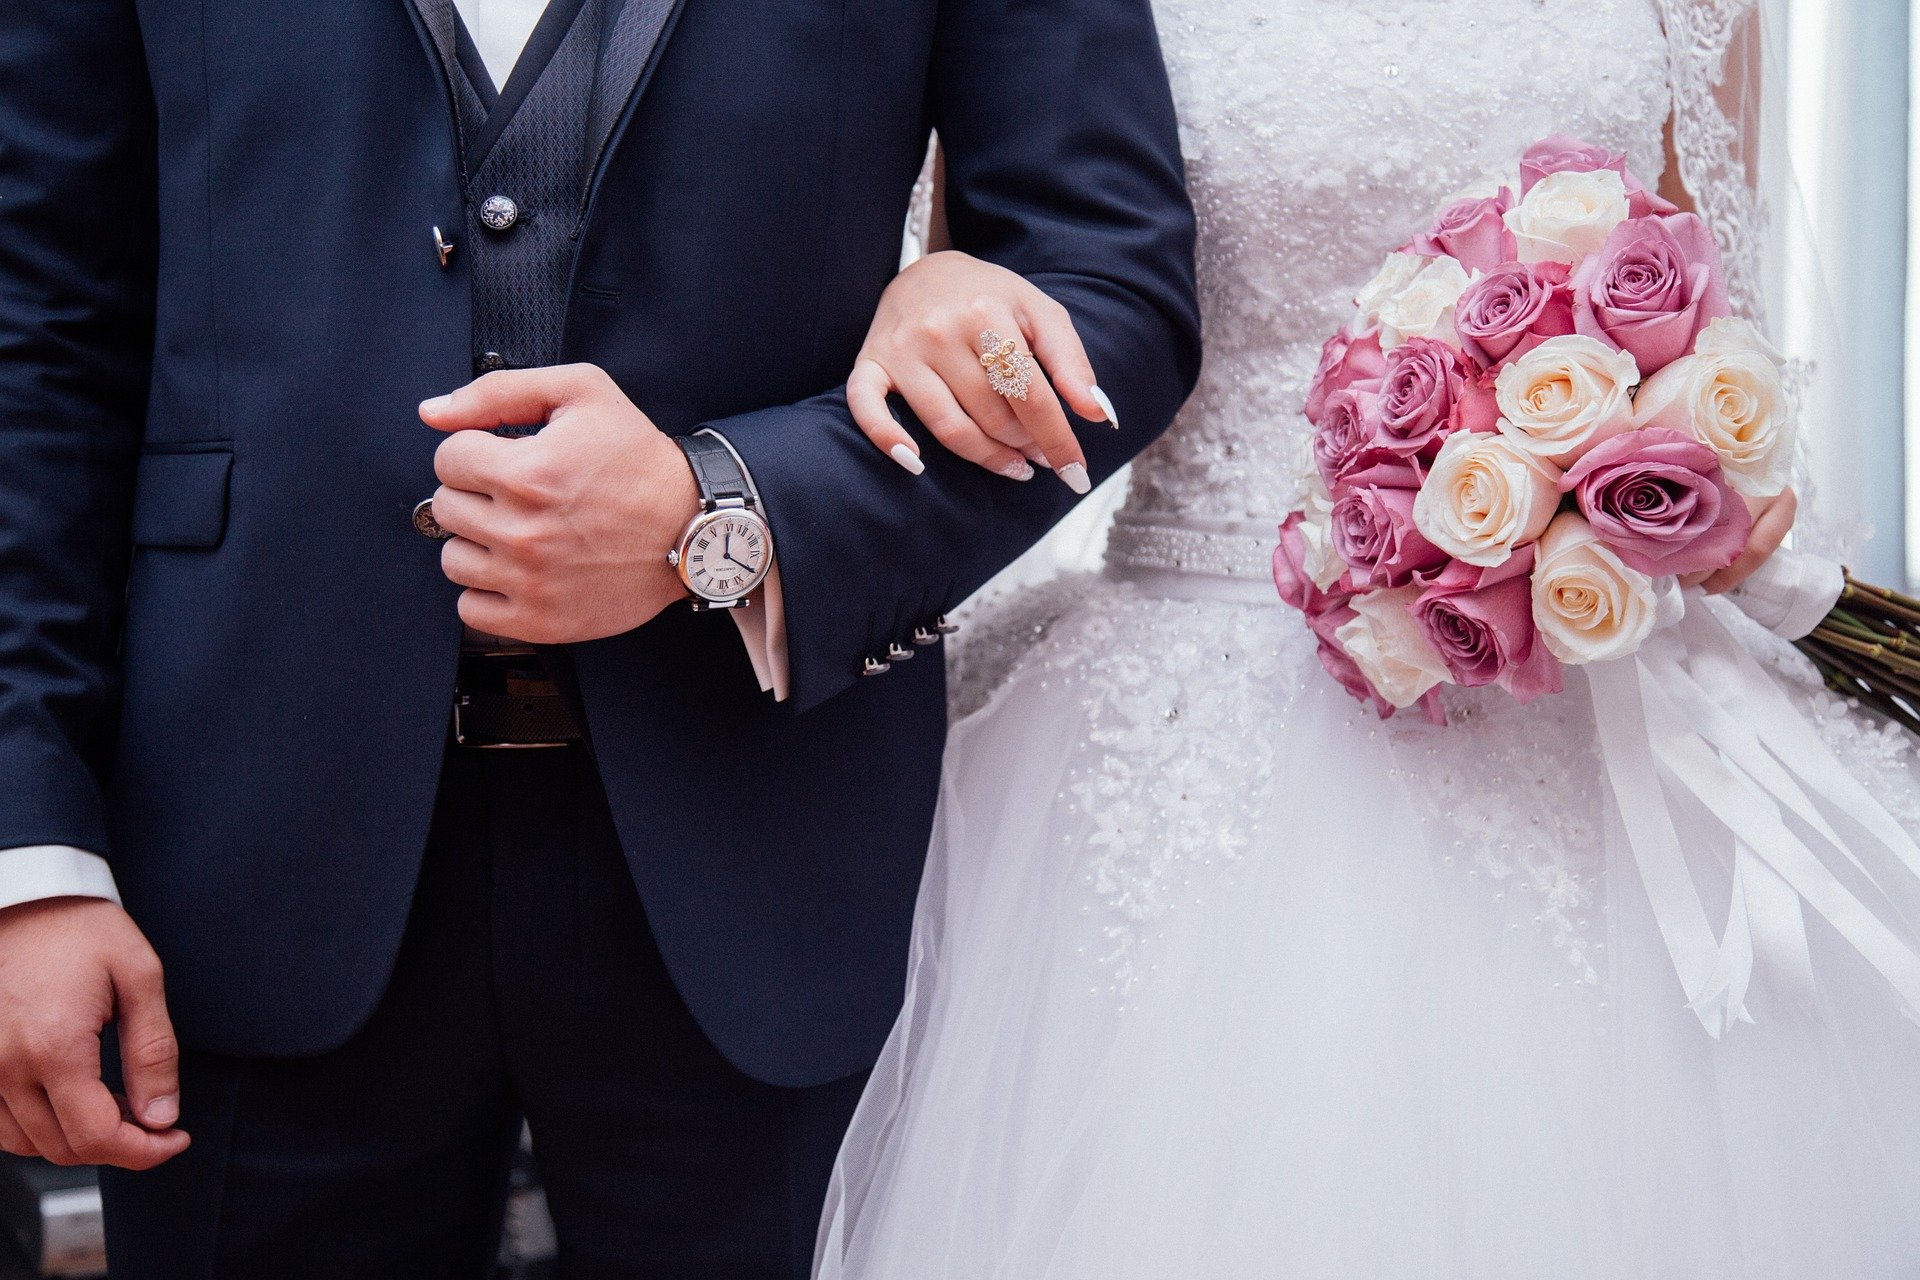 Stock image of midsection of bride and groom with arms linked.   Source: Pixabay